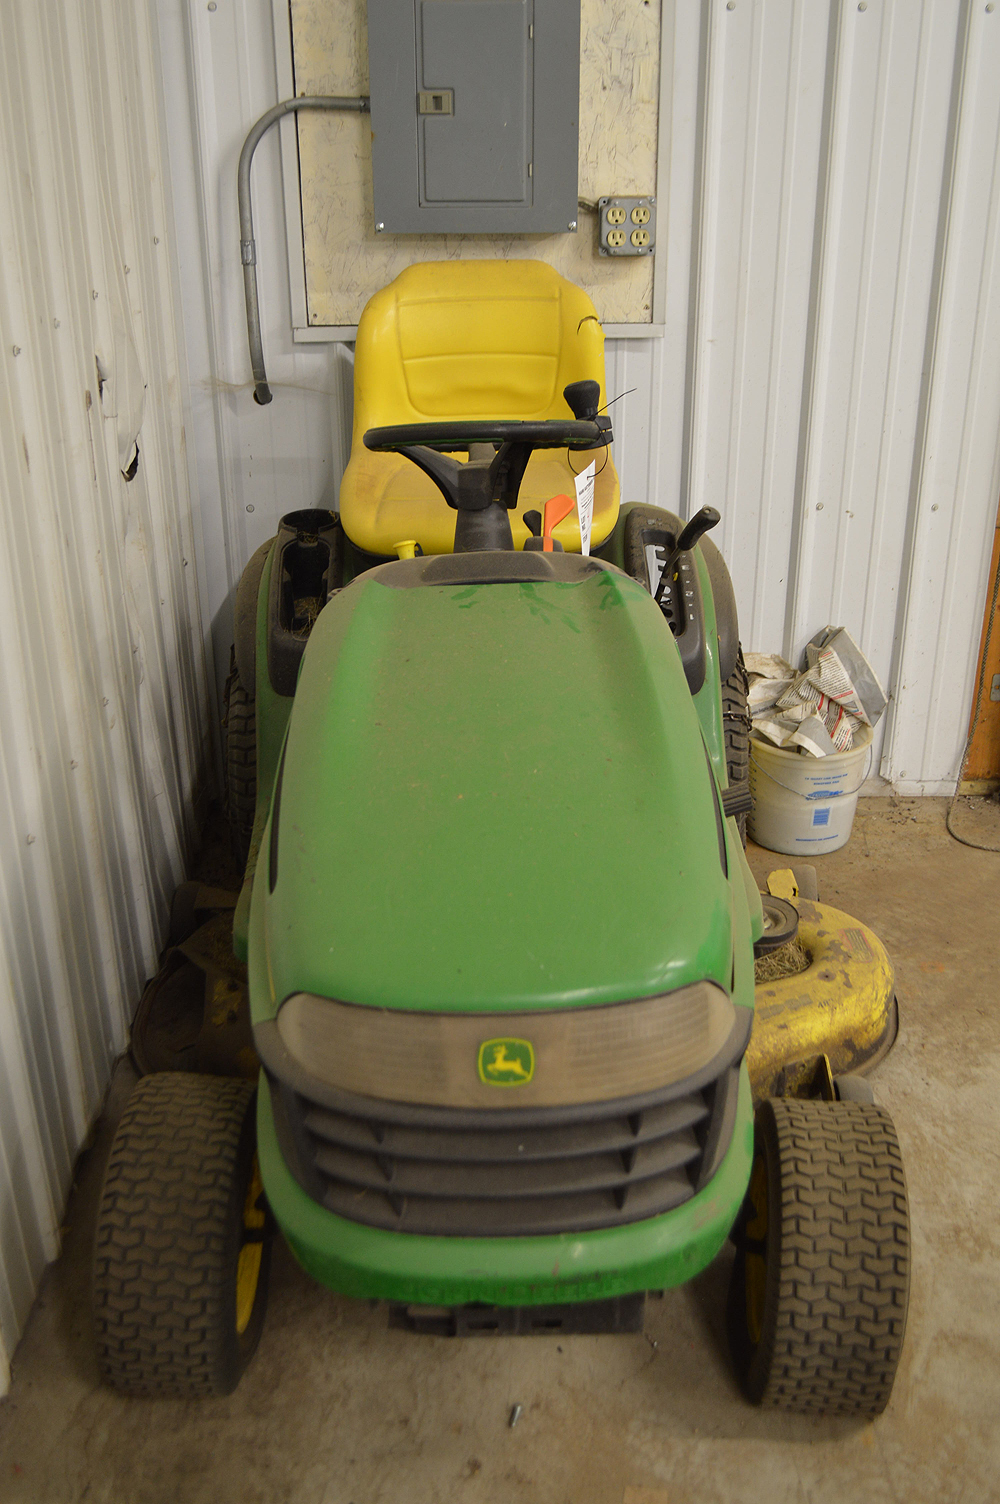 JOHN DEERE 100 SERIES RIDING LAWN TRACTOR, HYDROSTATIC, NEEDS BATTERY - Image 2 of 2